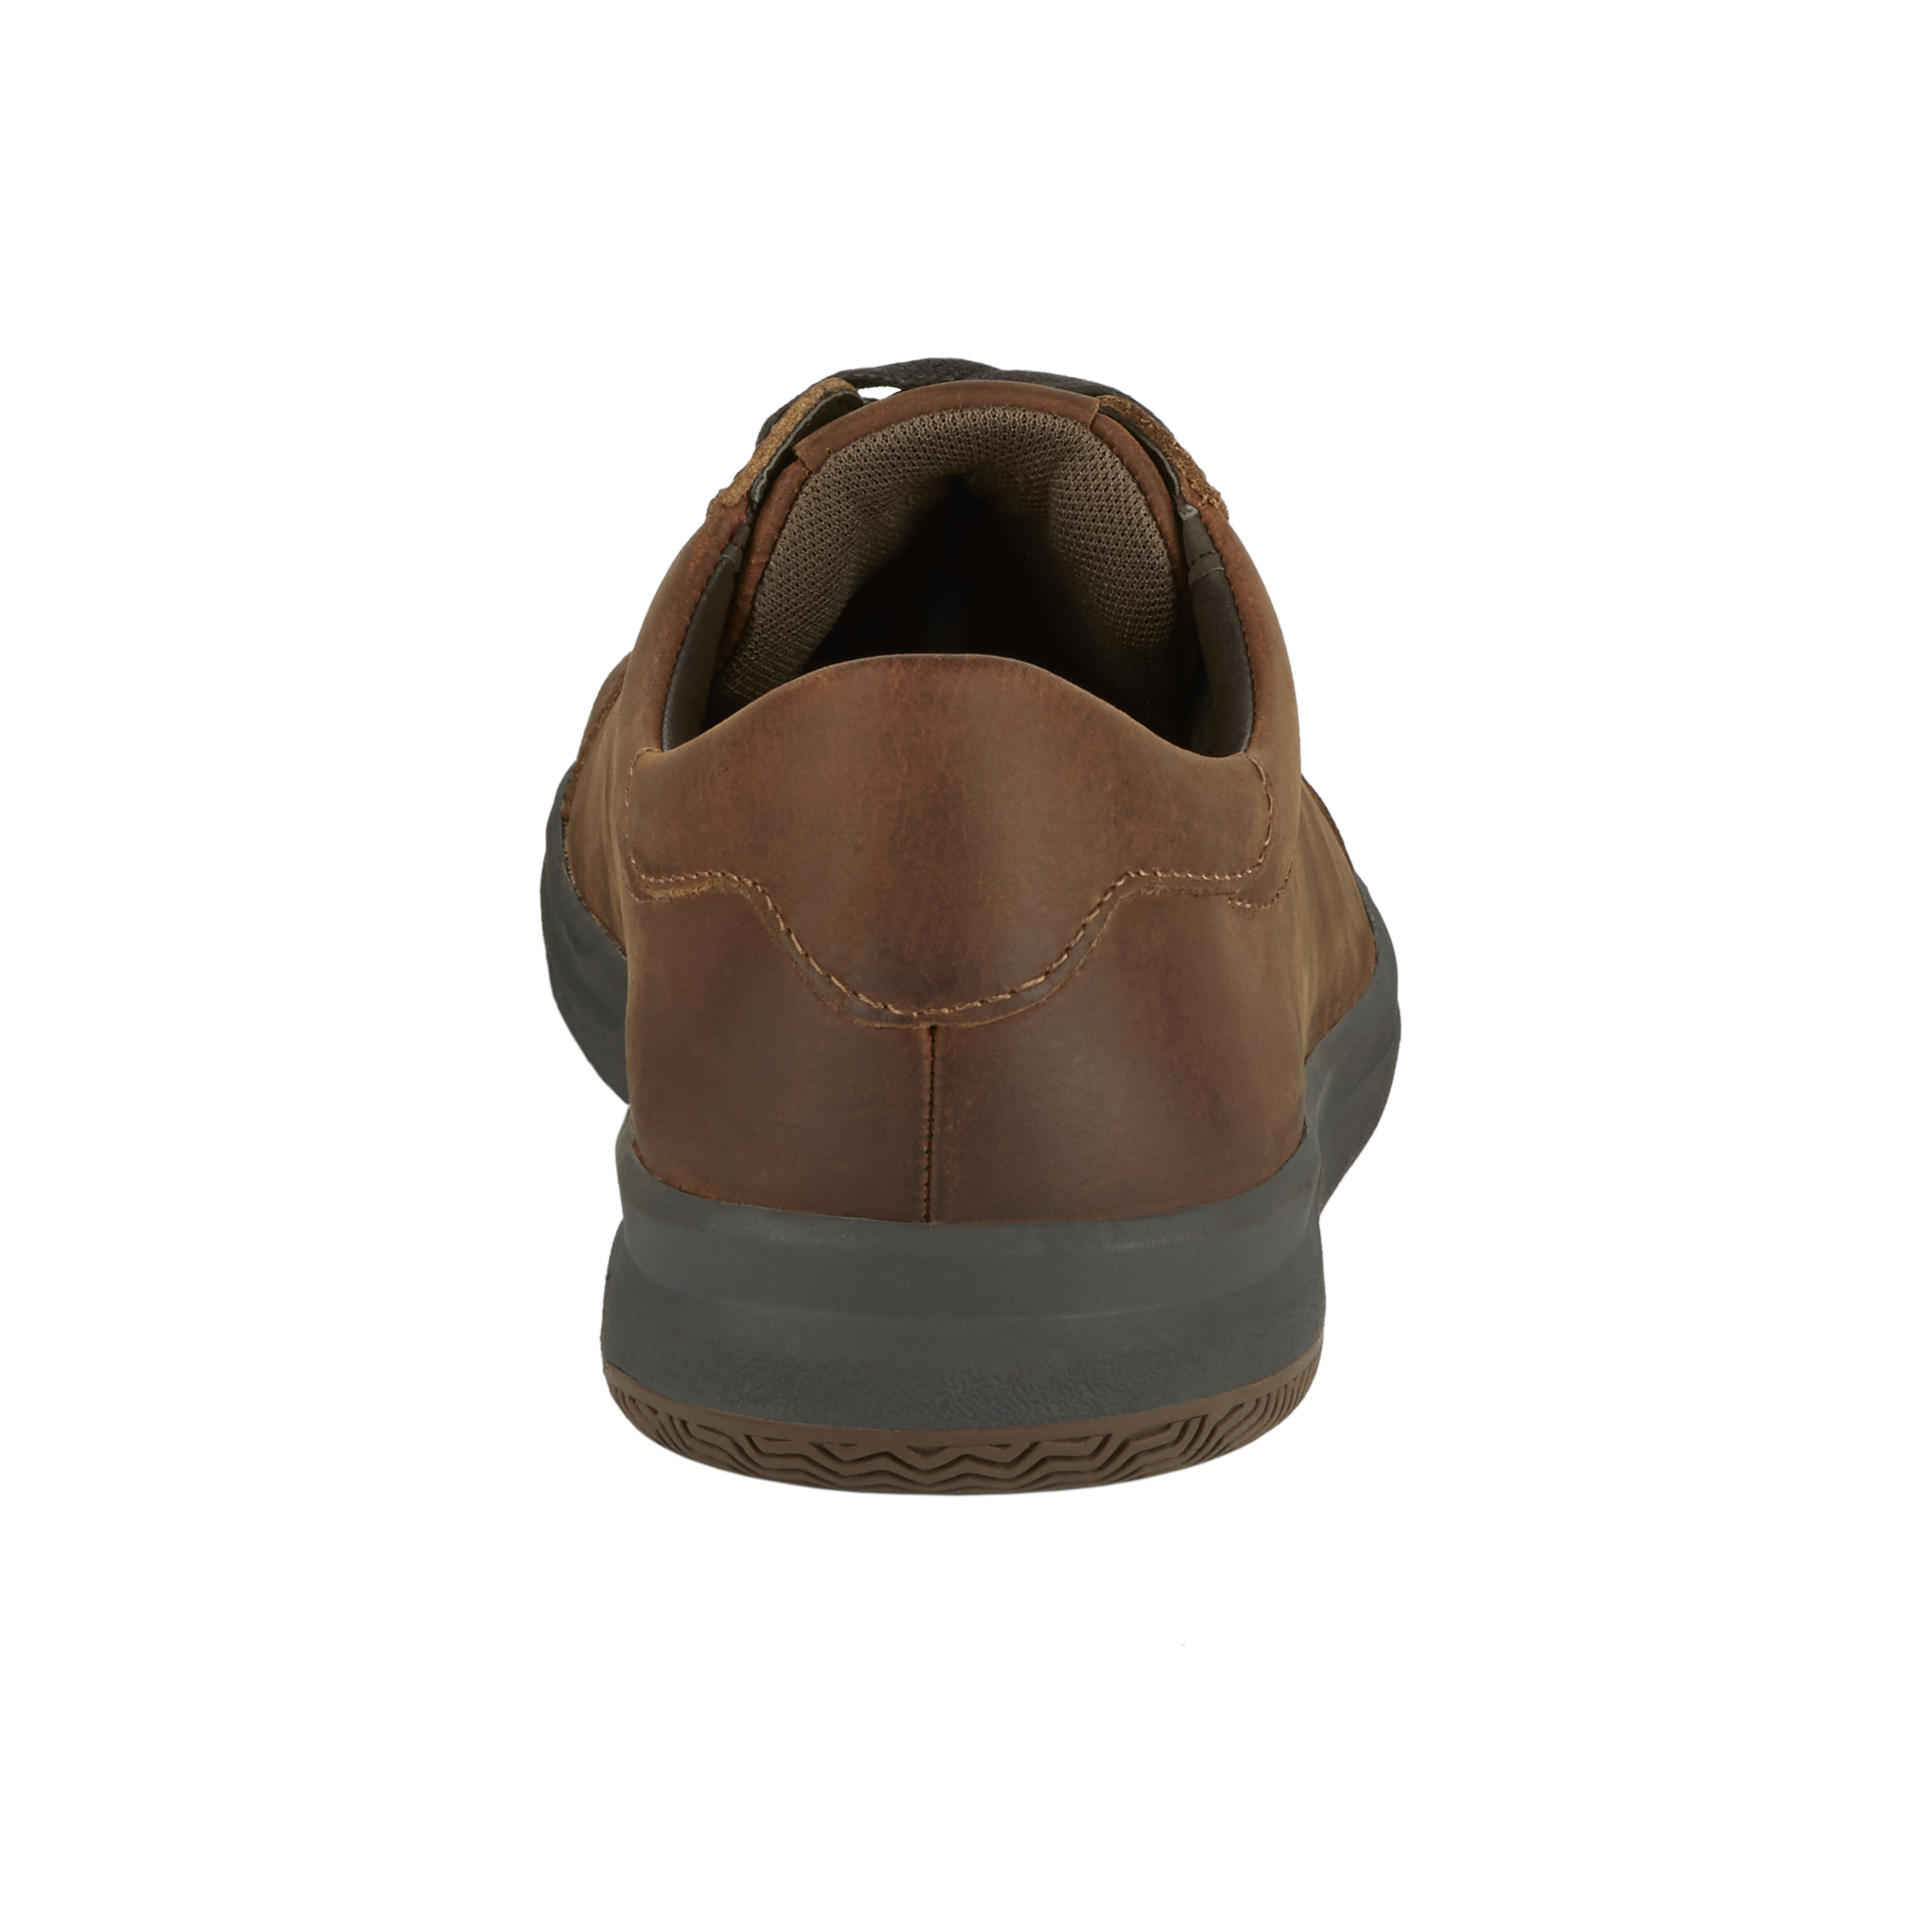 Dockers-Mens-Gilmore-Genuine-Leather-Casual-Fashion-Lace-up-Sneaker-Shoe thumbnail 21